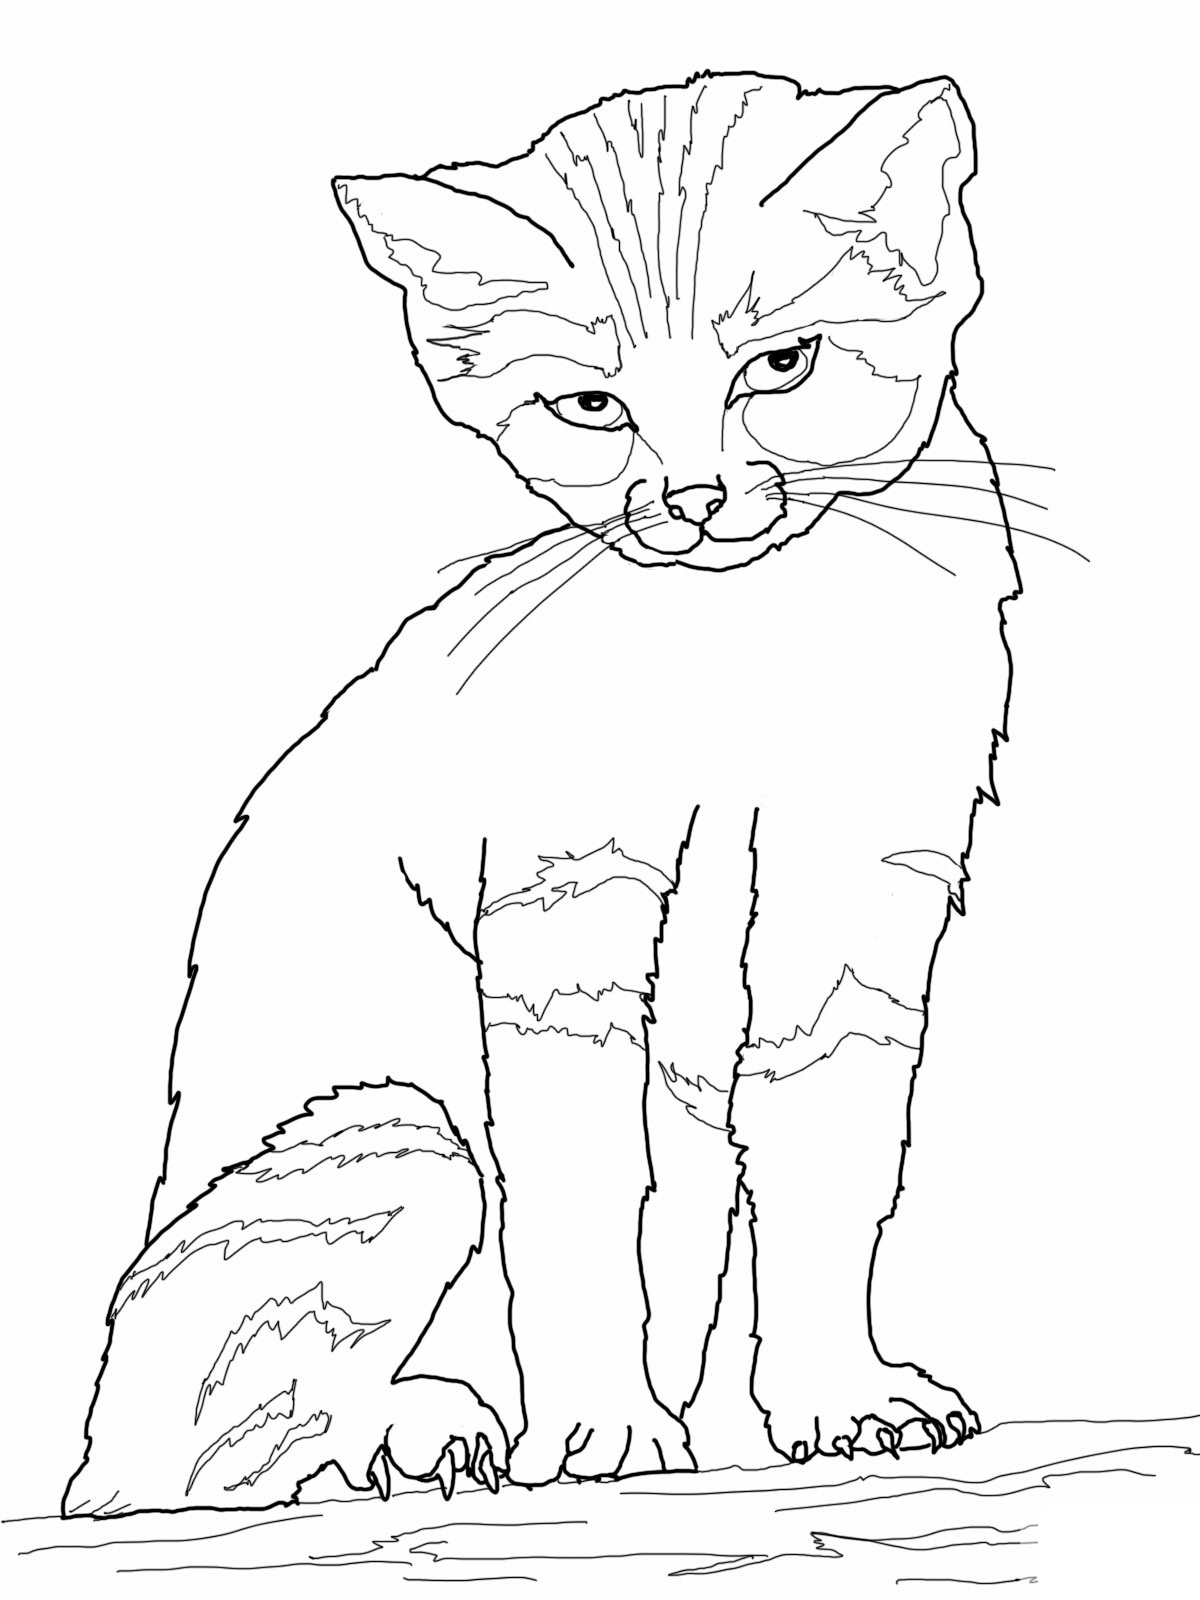 Free Printable Cat Coloring Pages For Kids Coloring Page Cat